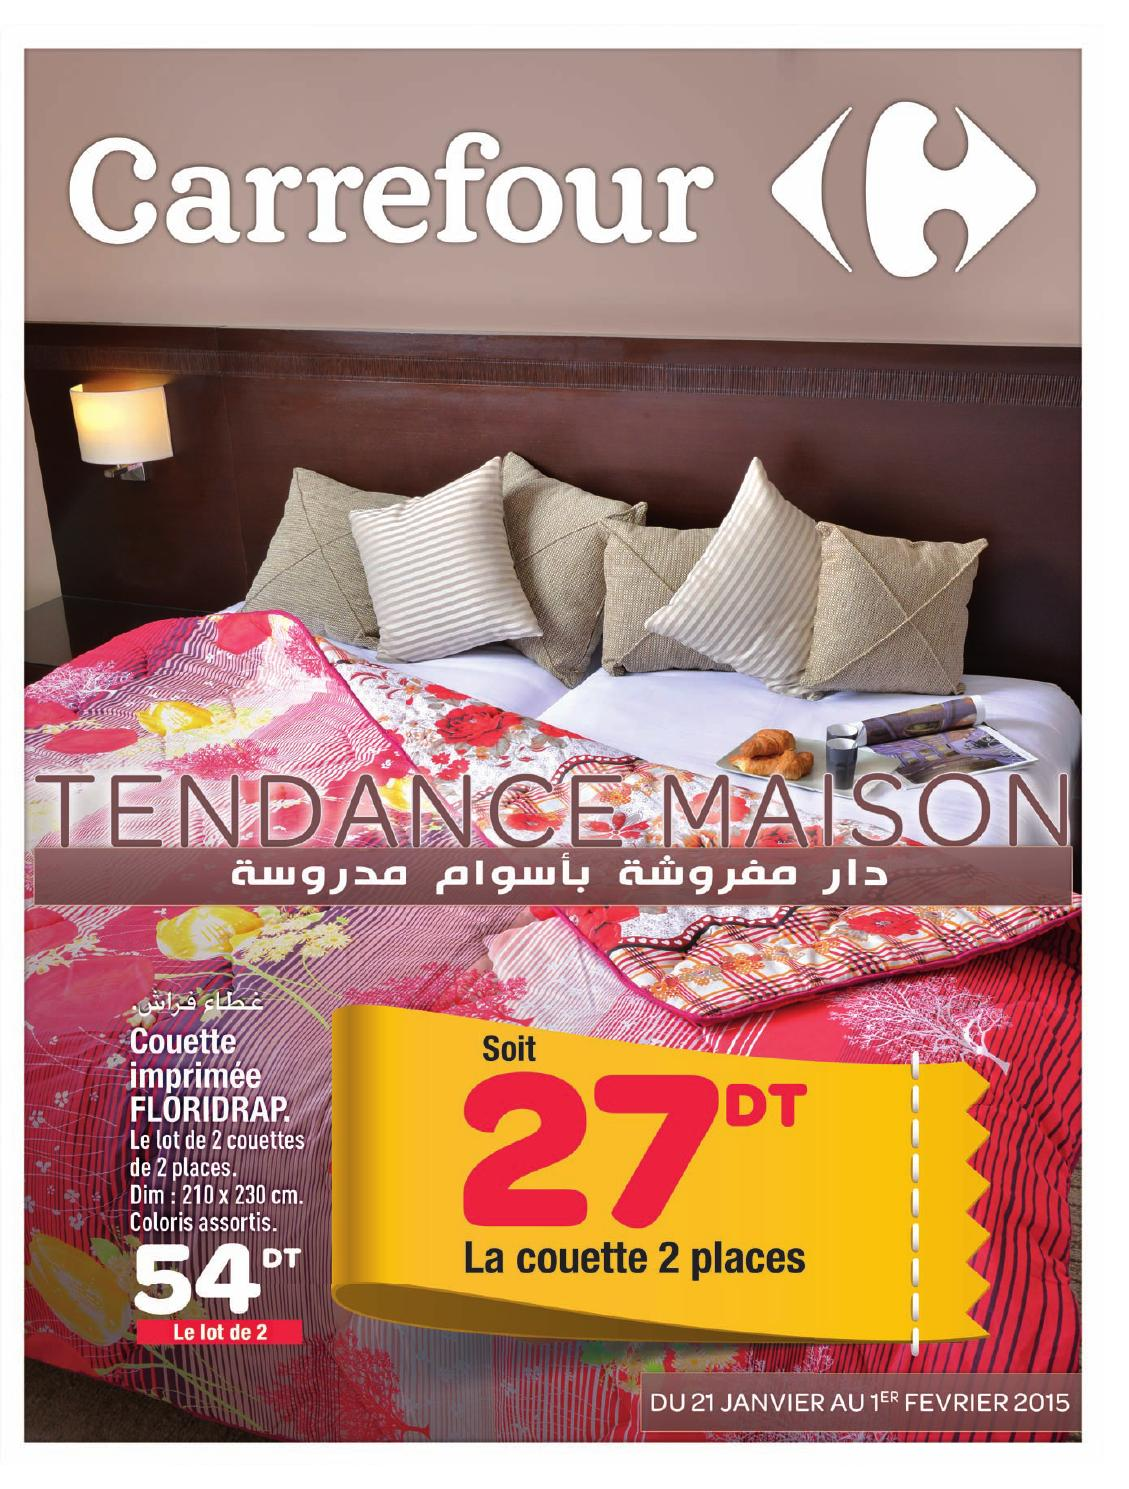 Catalogue Carrefour Tendance Maison By Carrefour Tunisie Issuu